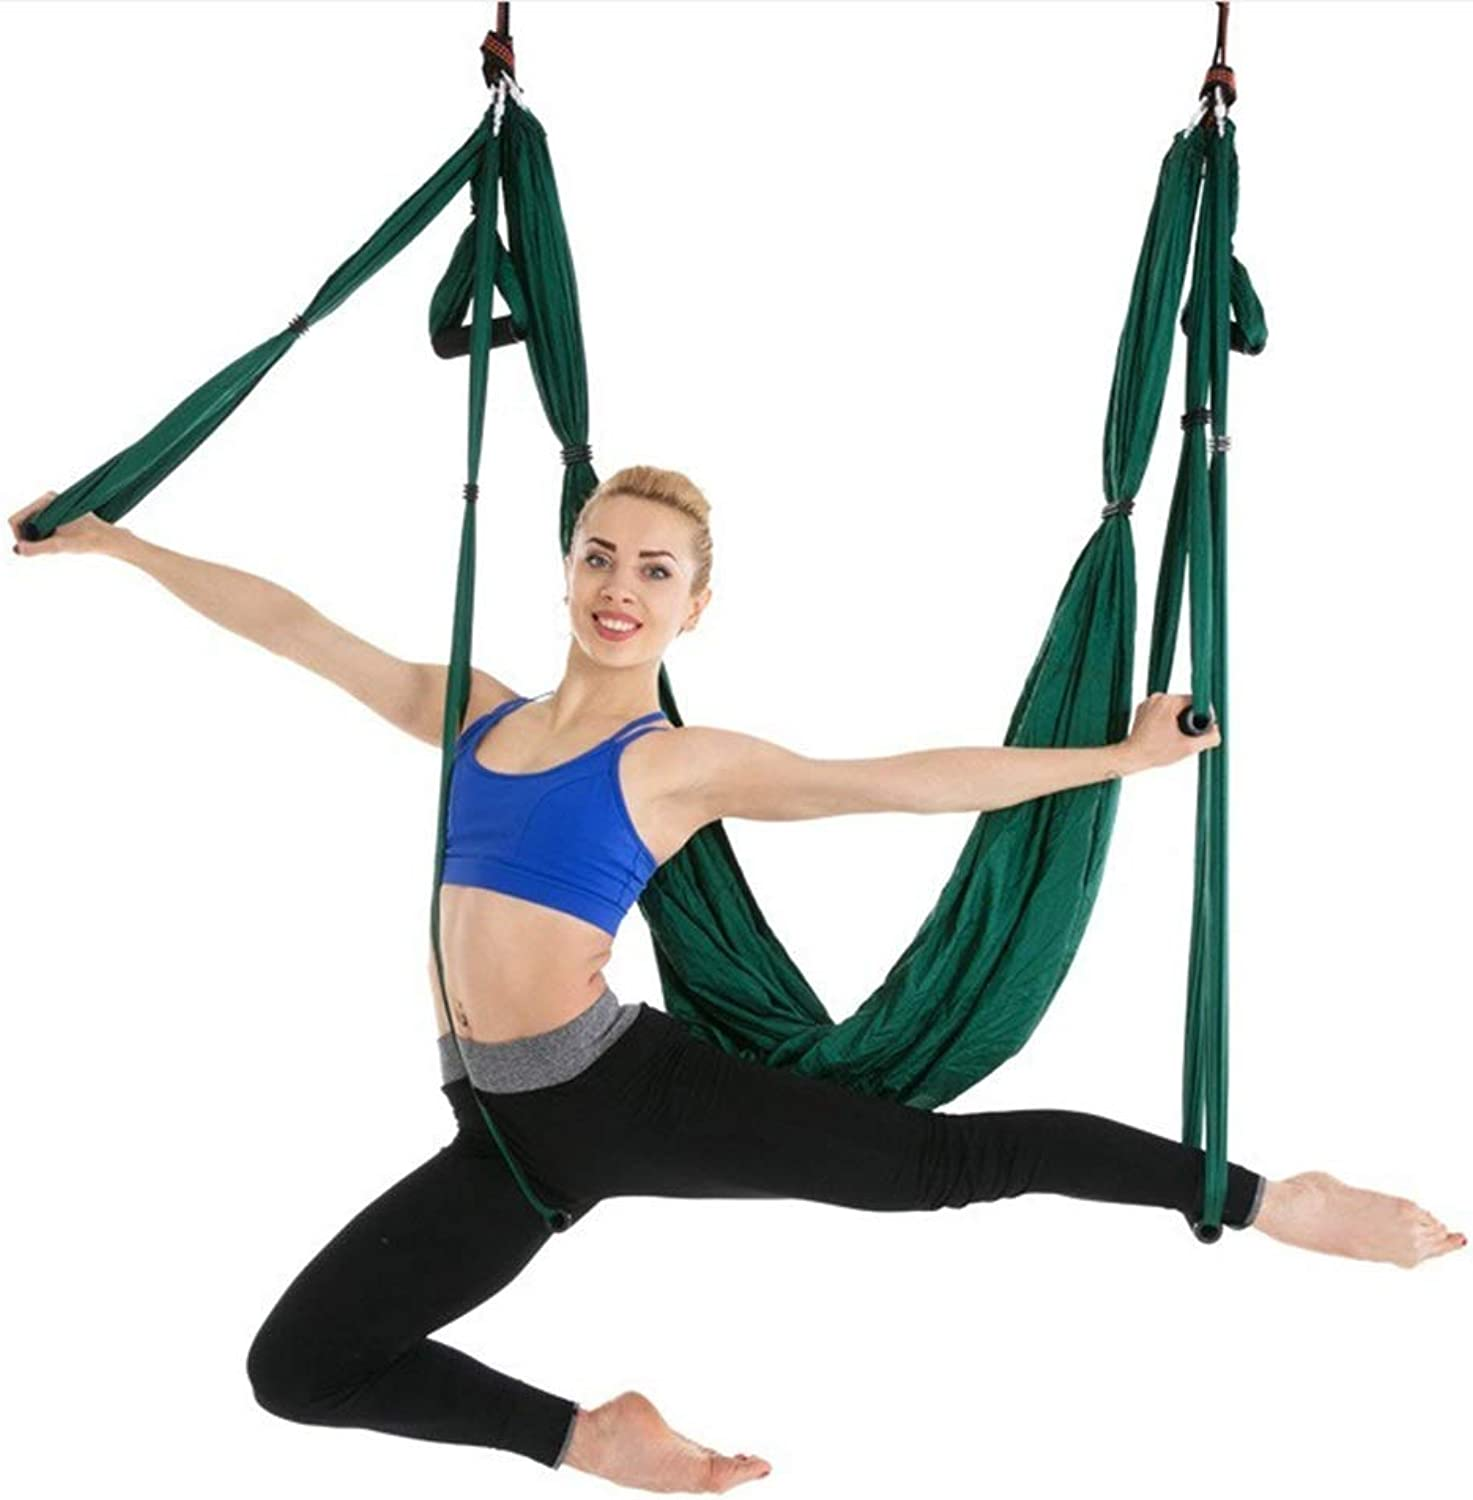 Inversion Equipment Yoga Hammock 6Handle Home Ingreened Fitness Hammock AntiGravity Yoga Harness Strong WeightBearing Yoga Hammock Load 200KG (color   Green)